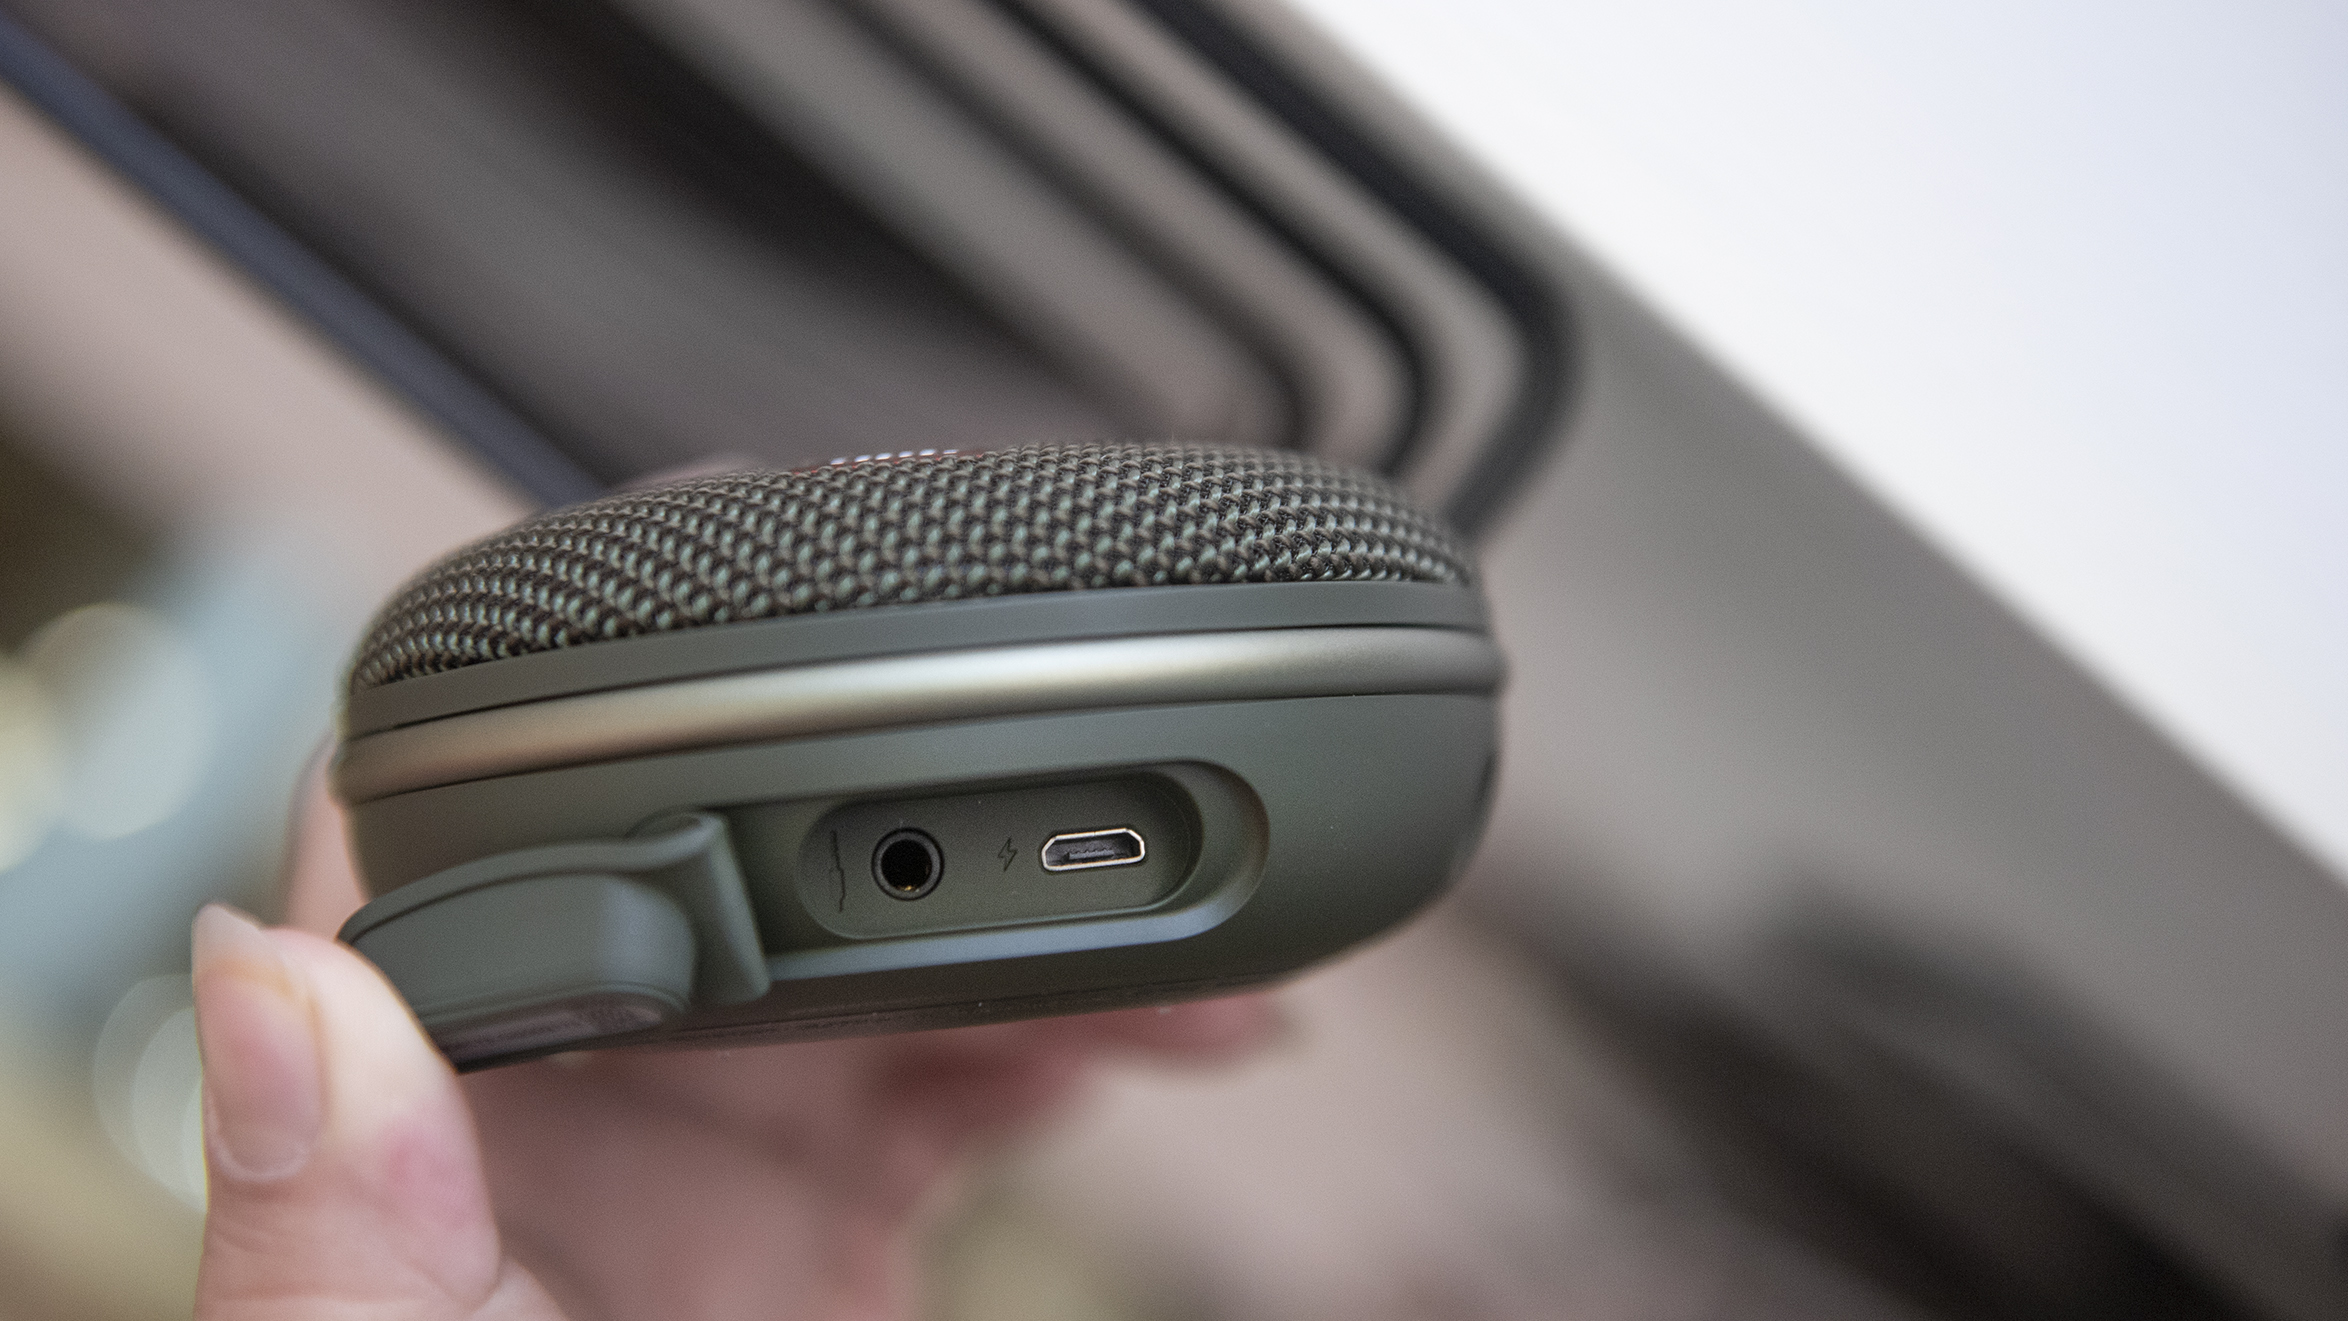 Jbl Clip 3 Review A Better Speaker Than The 2 Pure Gadgets One Function Supported By Thats Been Omitted From Though Is Daisy Chaining If You Want To Enjoy Boosted Sound Pairing Second